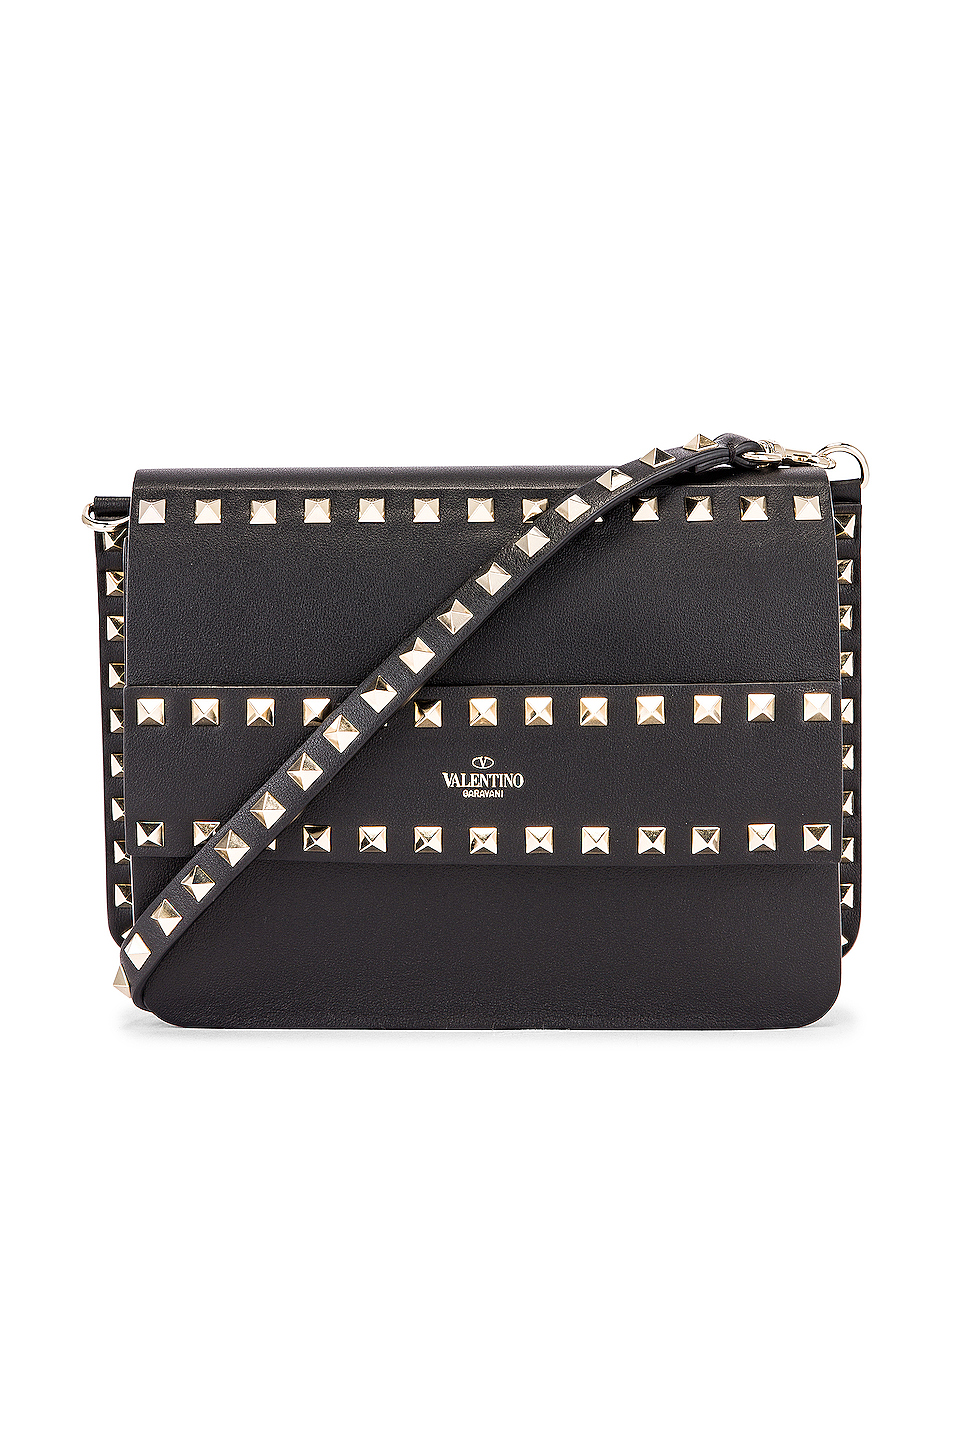 save up to 60% deft design customers first Rockstud Crossbody Camera Bag, Valentino